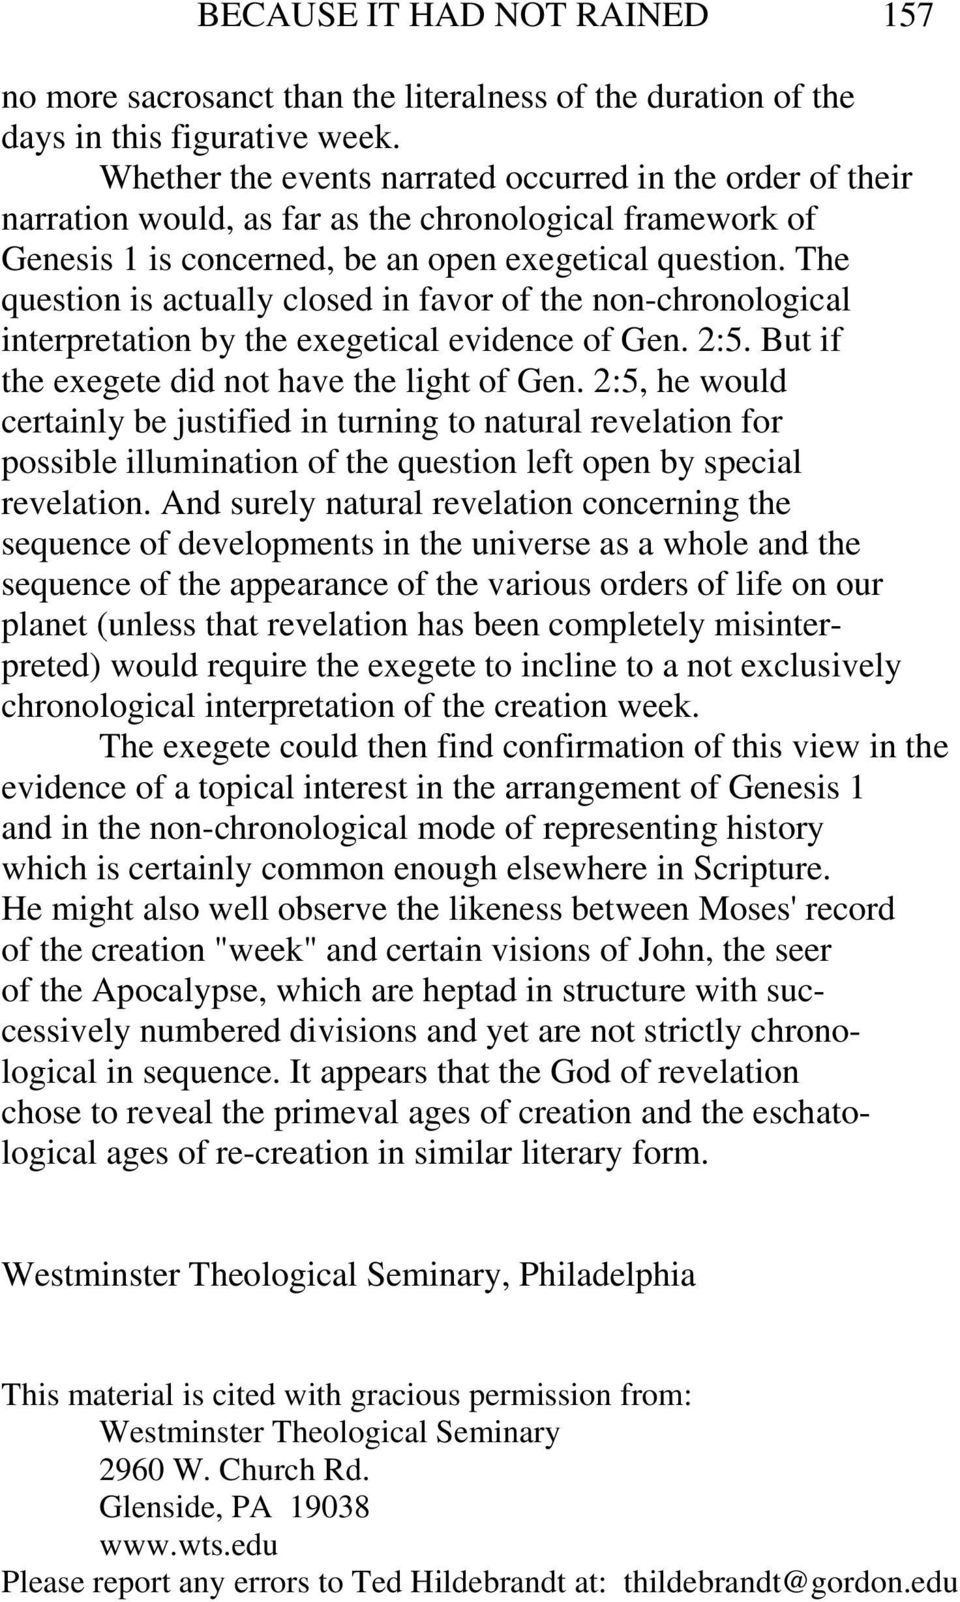 The question is actually closed in favor of the non-chronological interpretation by the exegetical evidence of Gen. 2:5. But if the exegete did not have the light of Gen.